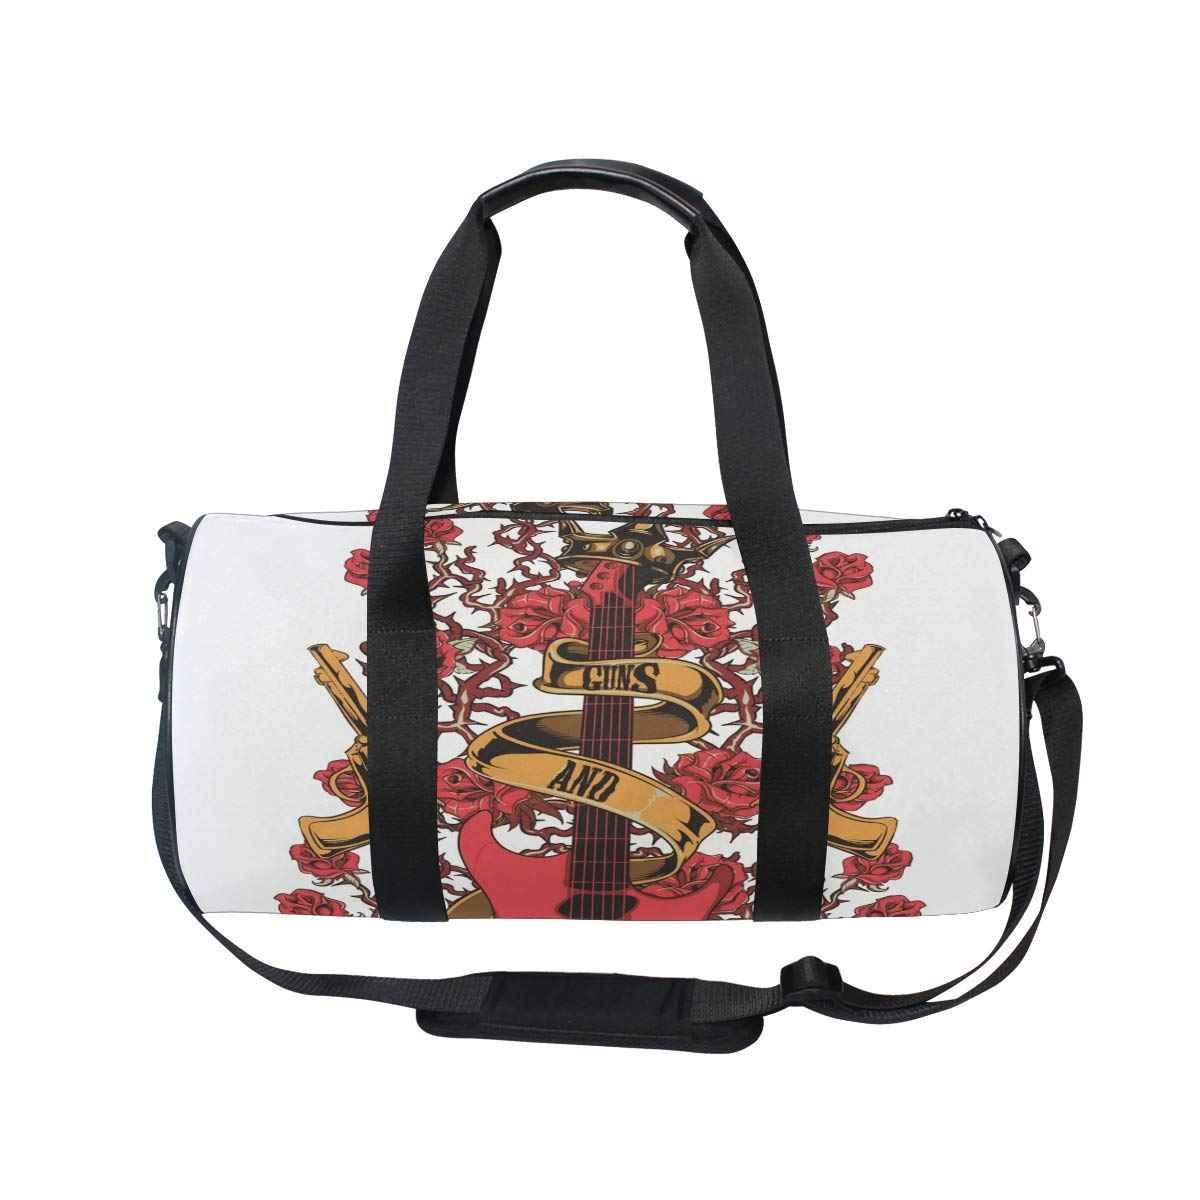 Travel Duffels Pattern With Roses Duffle Bag Luggage Sports Gym for Women /& Men